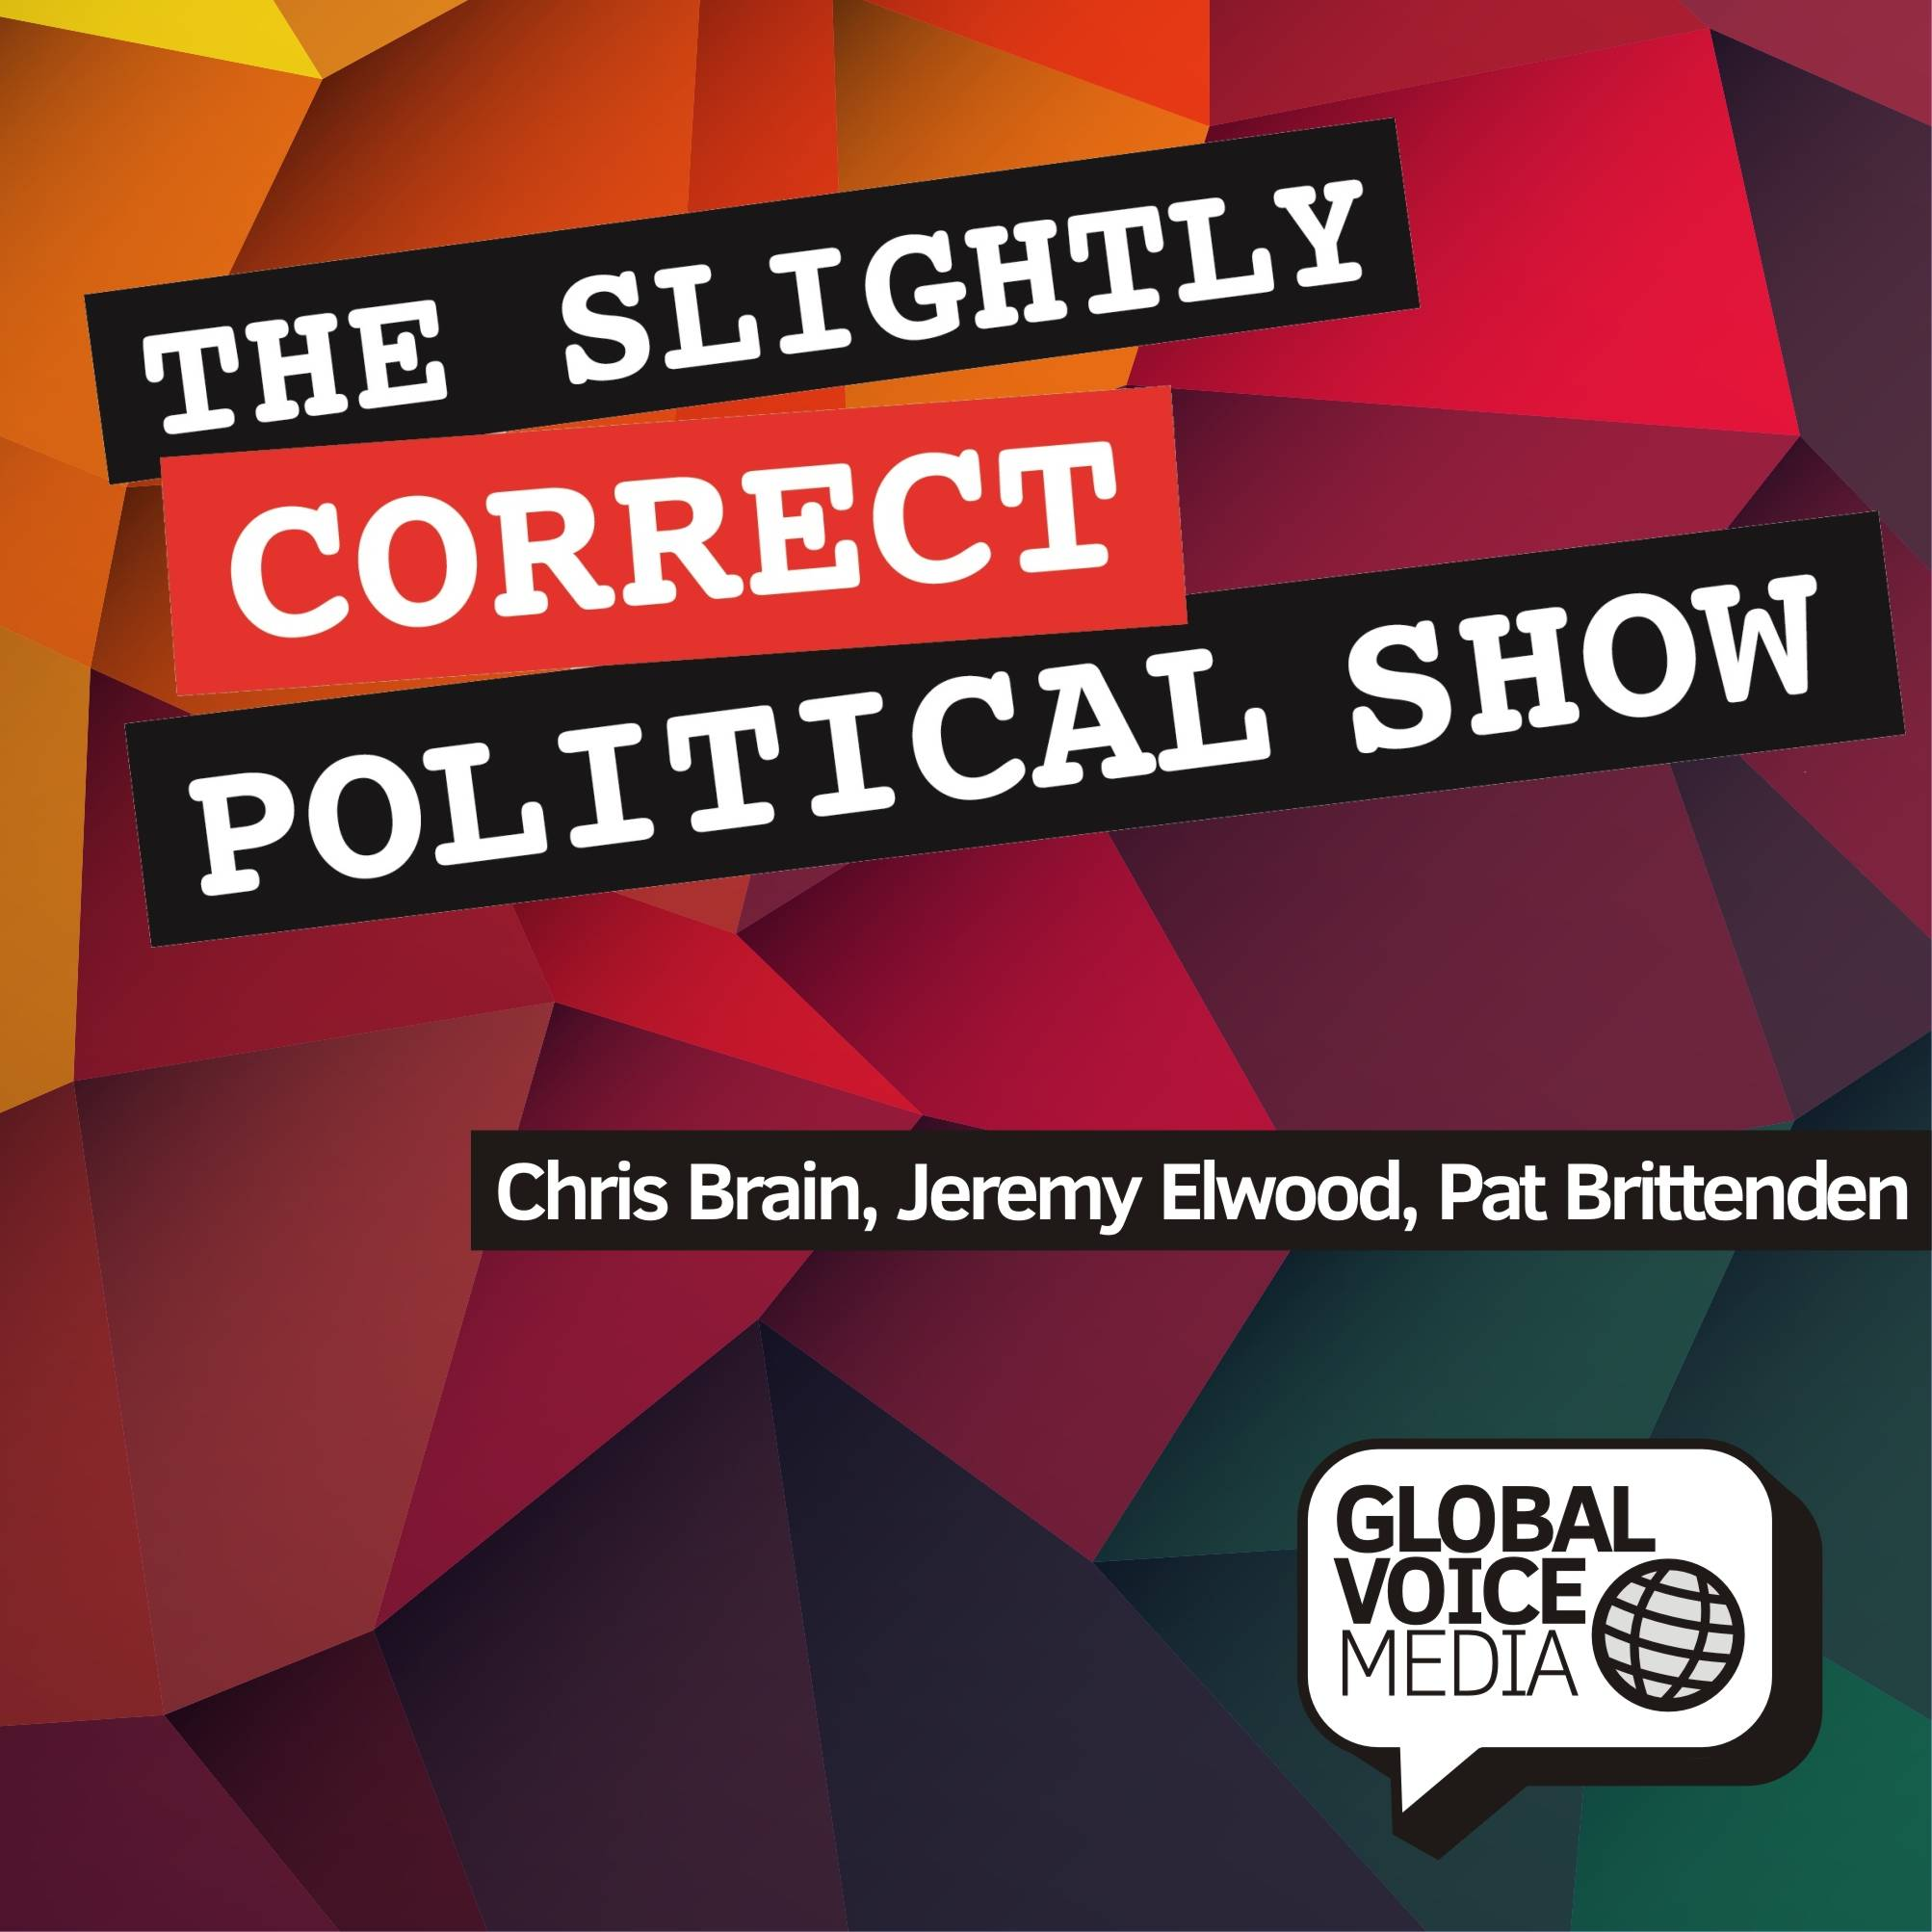 The Slightly Correct Political Show